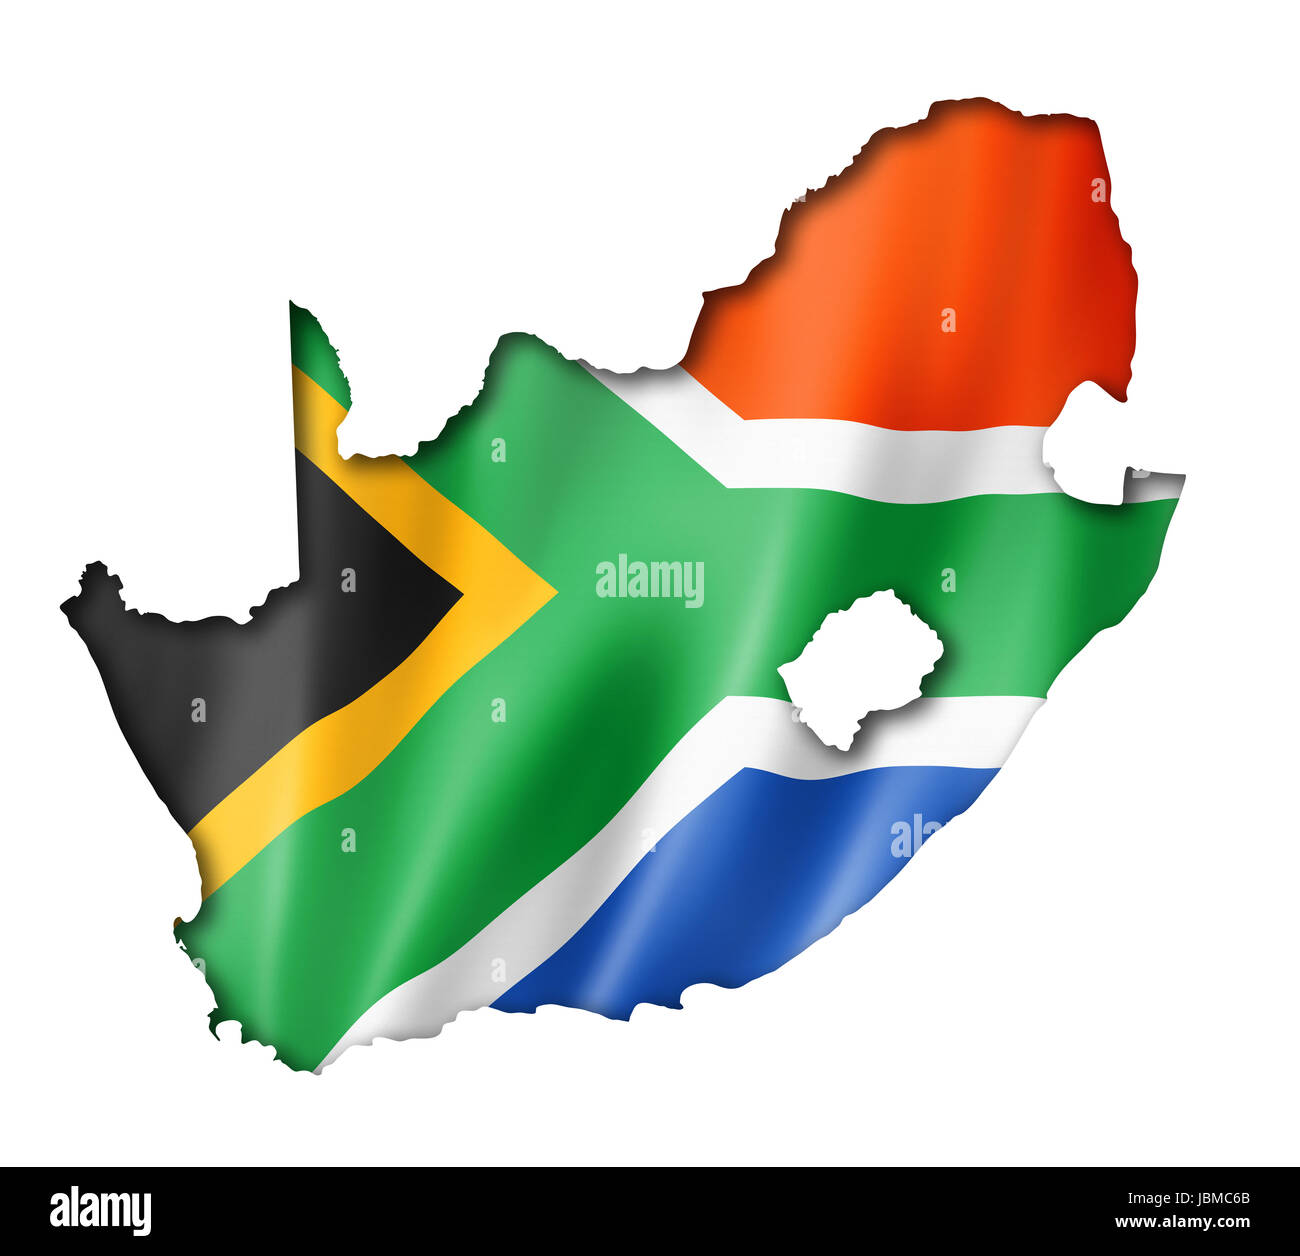 South Africa Flag Outline Stockfotos & South Africa Flag Outline ...